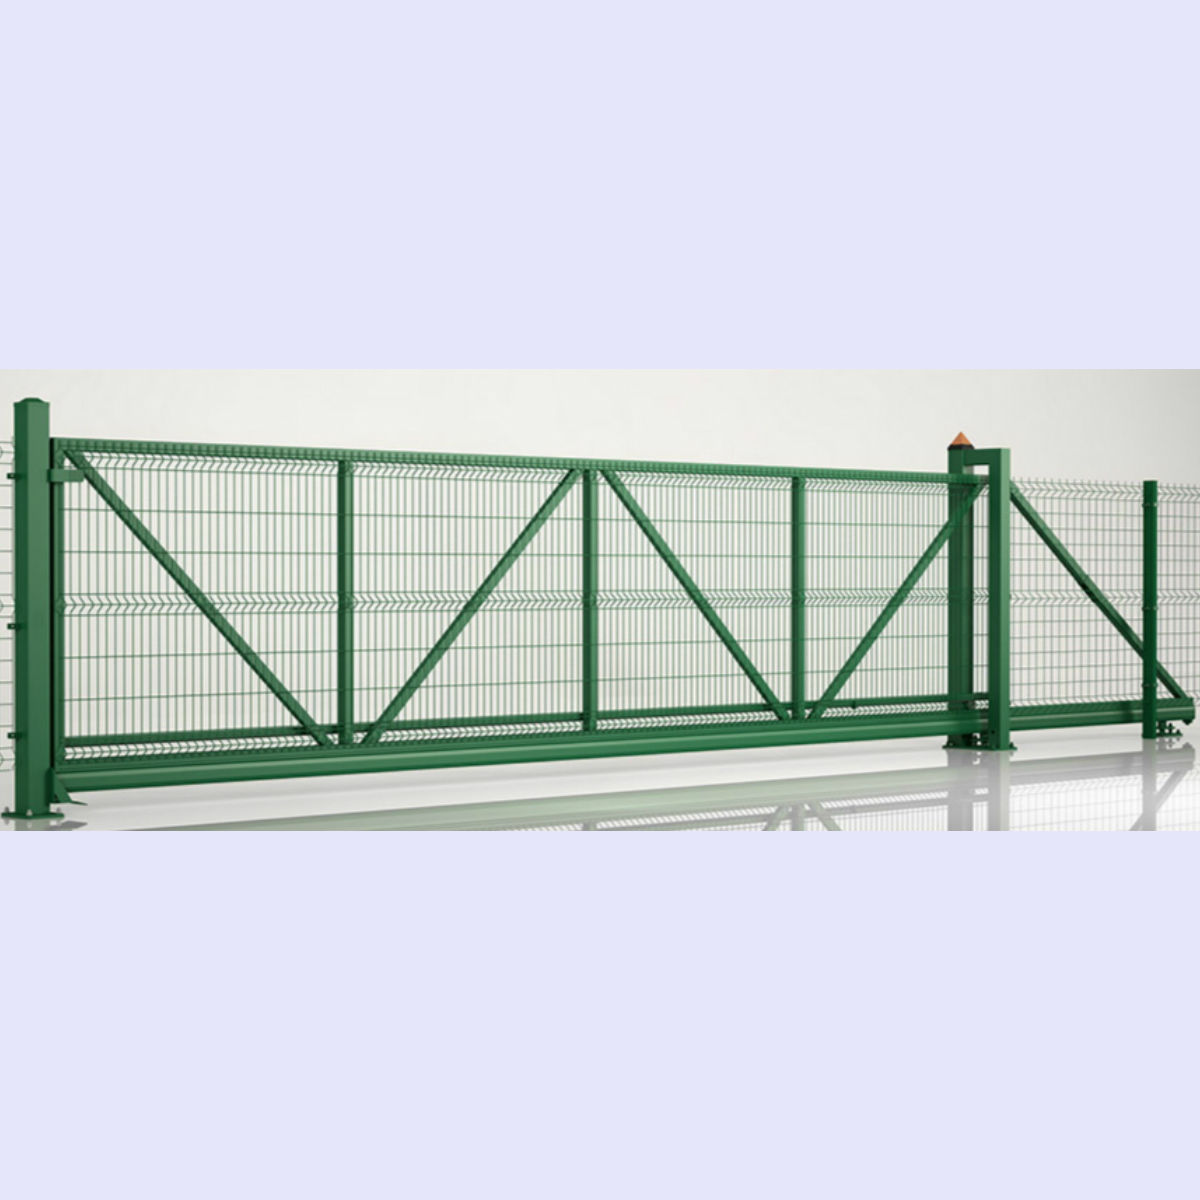 Safety Fence Classic Extra Length H 2 M * W 10 M 3D Curved Wire Mesh Manual Drive Cantilever-slide Fence Gate System For Safety On Sale